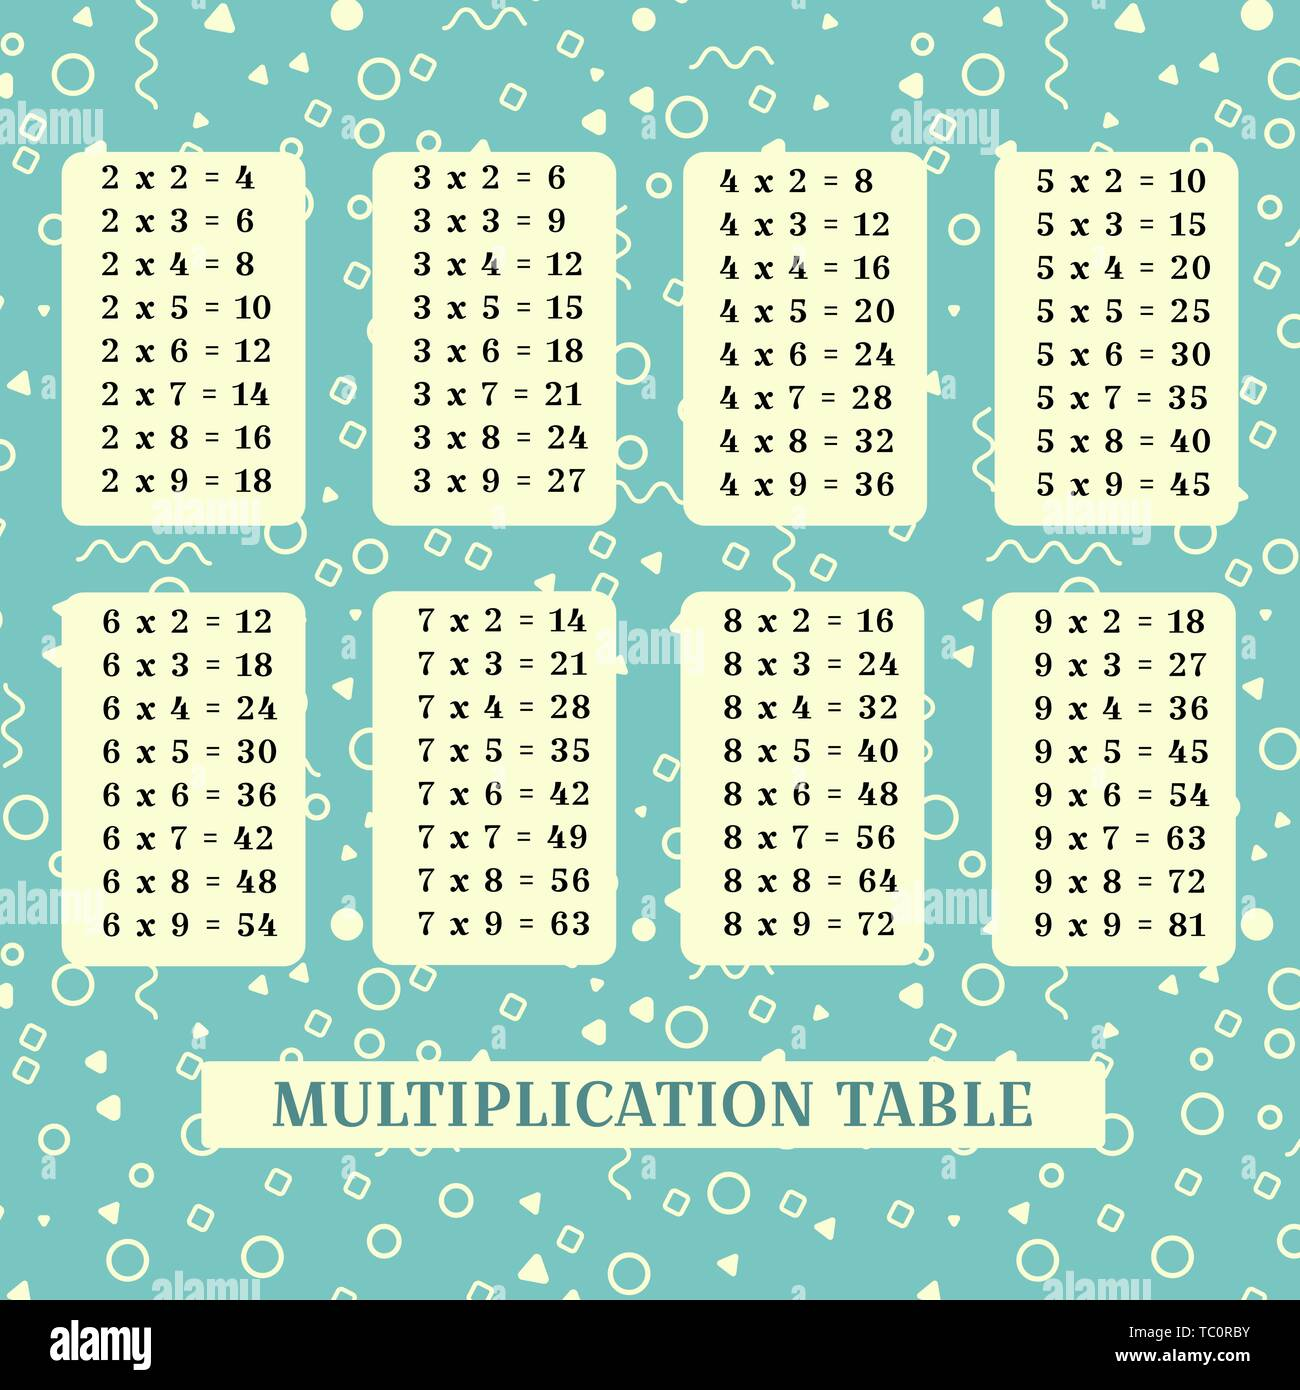 Multiplication Table High Resolution Stock Photography And Images Alamy